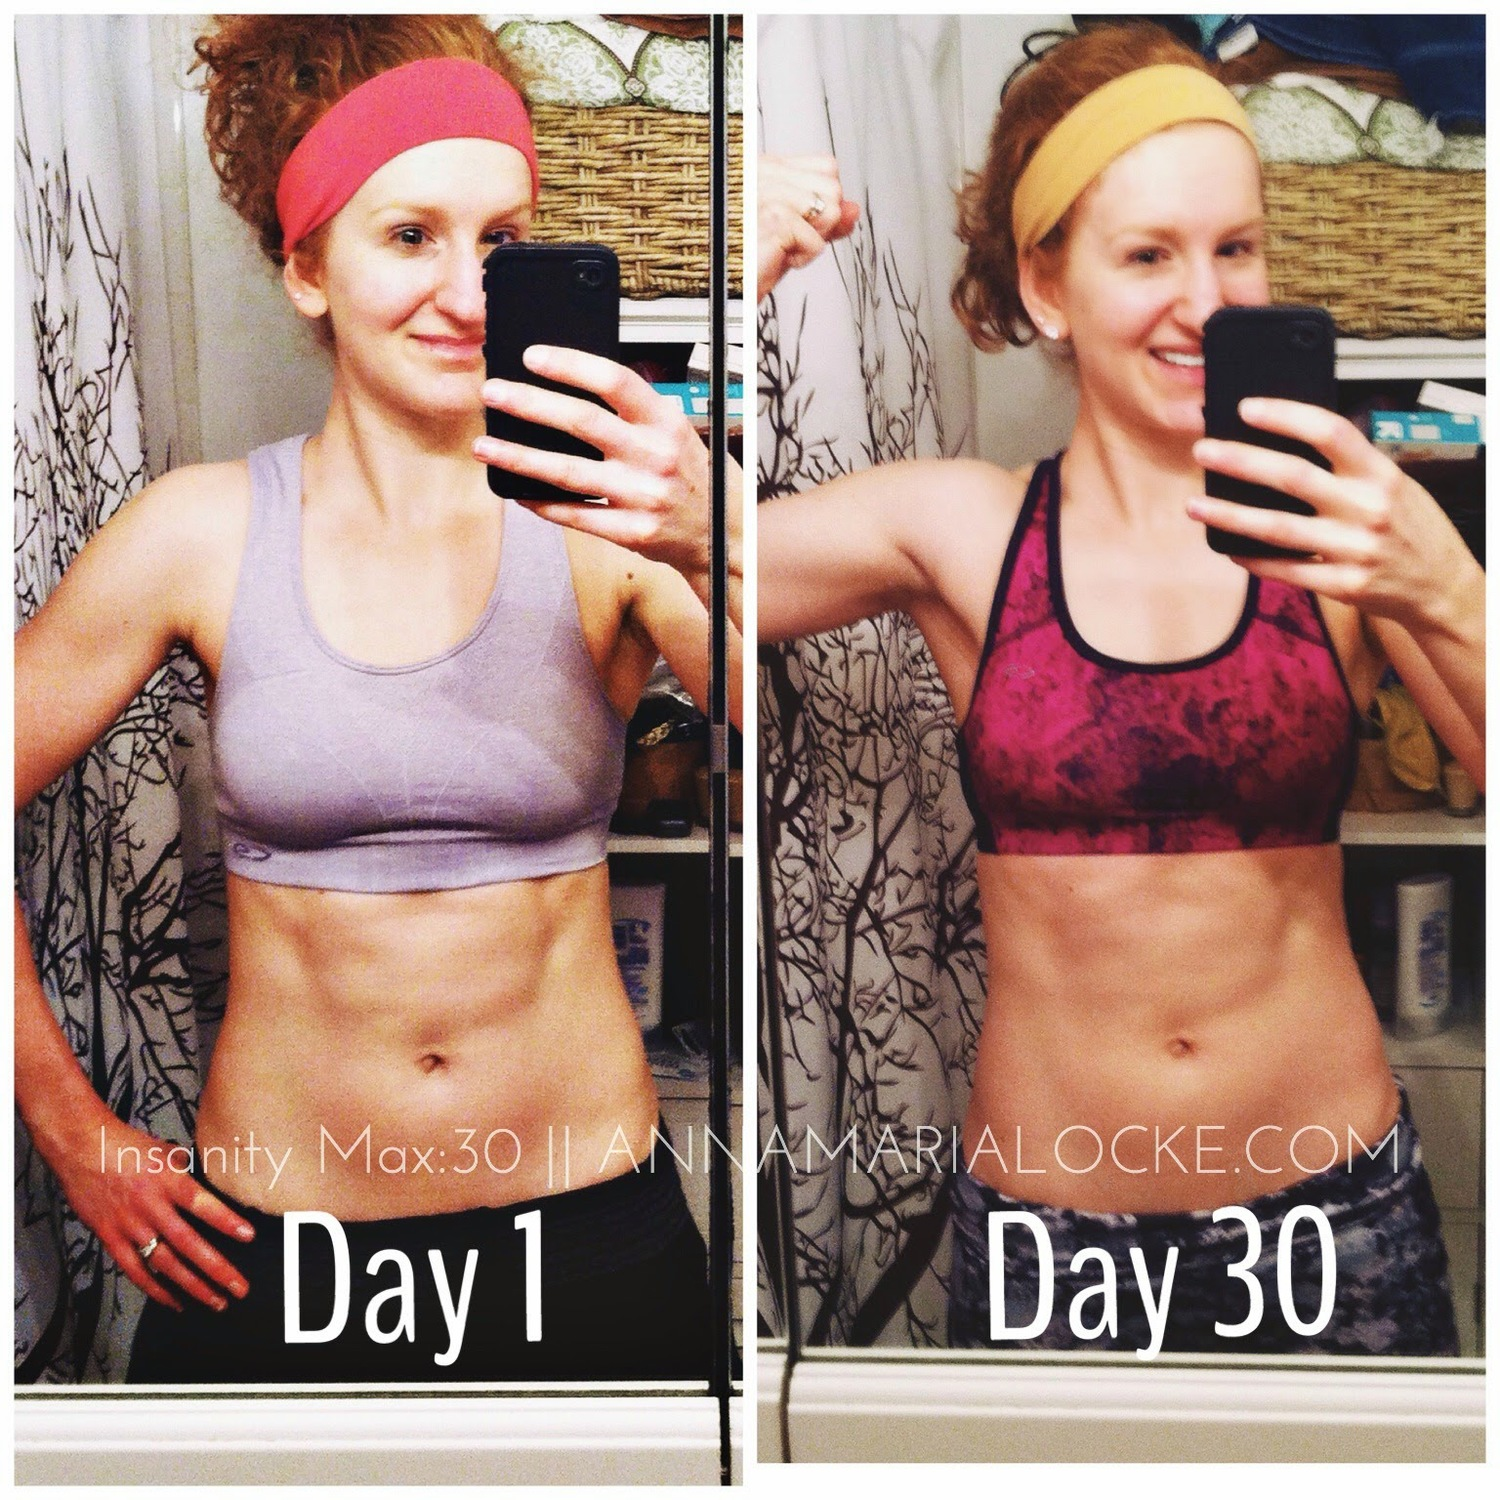 how Insanity Max:30 changed my life (confessions of a Shaun